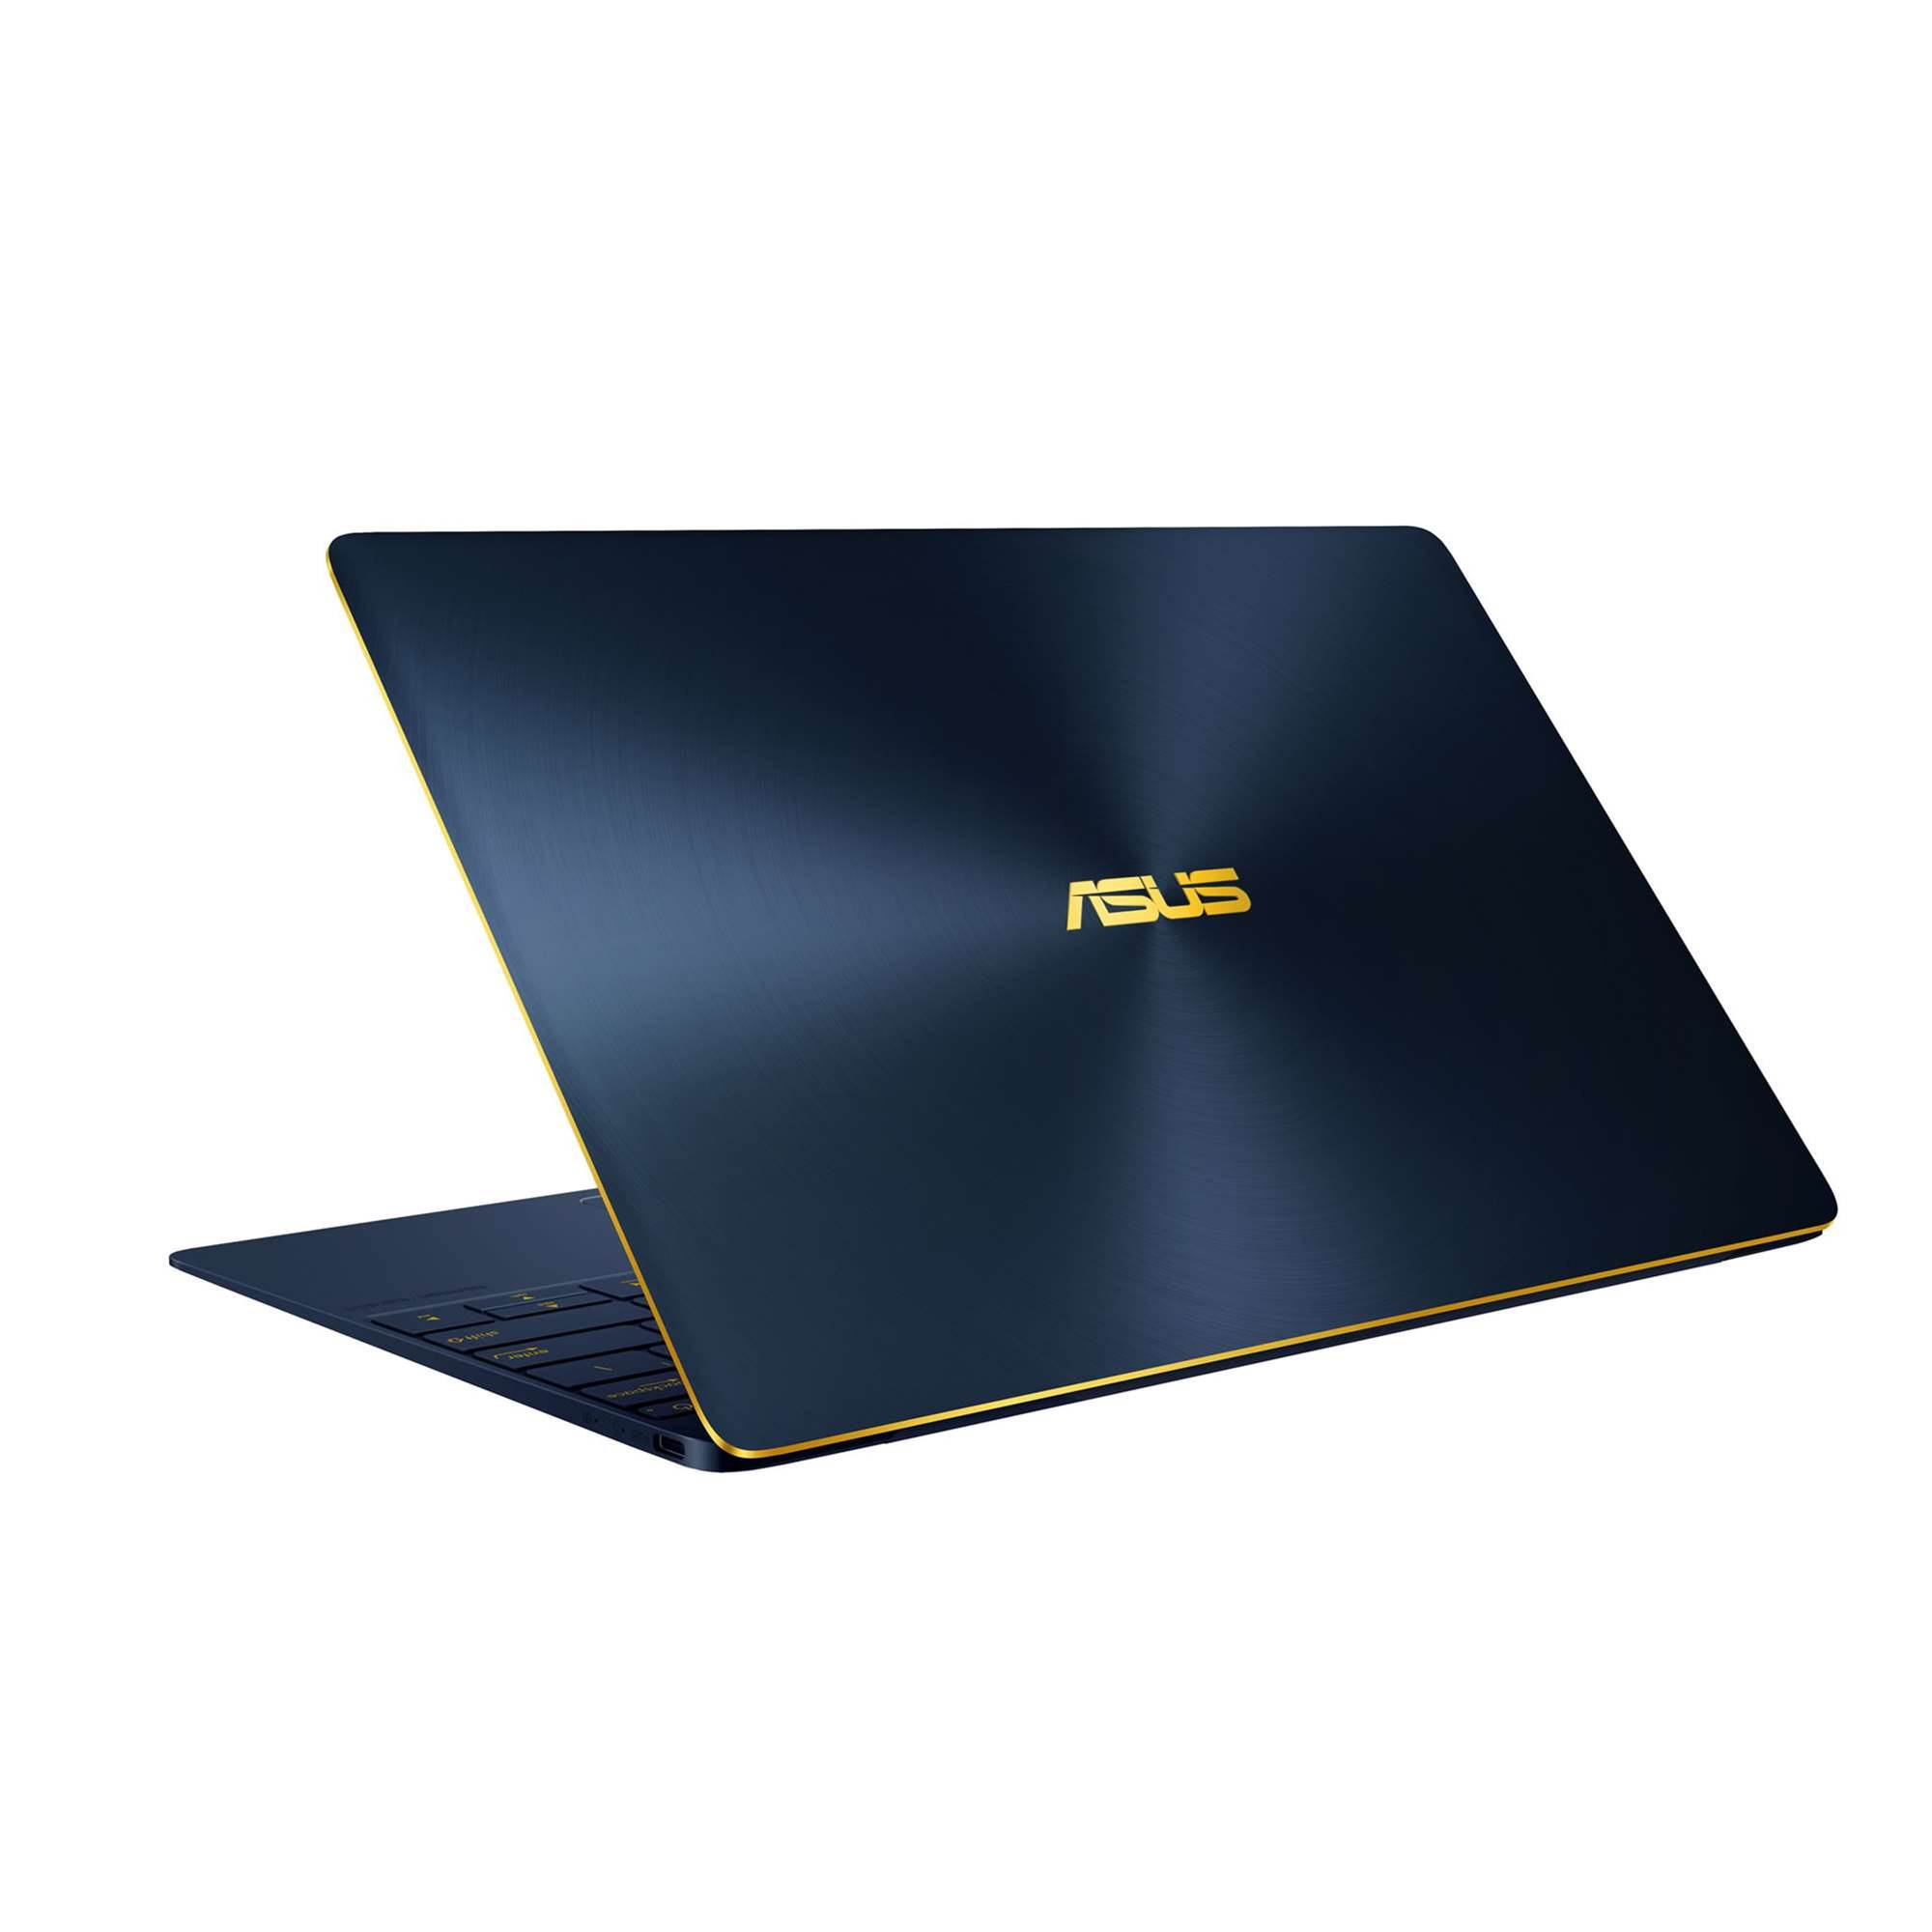 Asus lifts the lid on three stylish new laptops